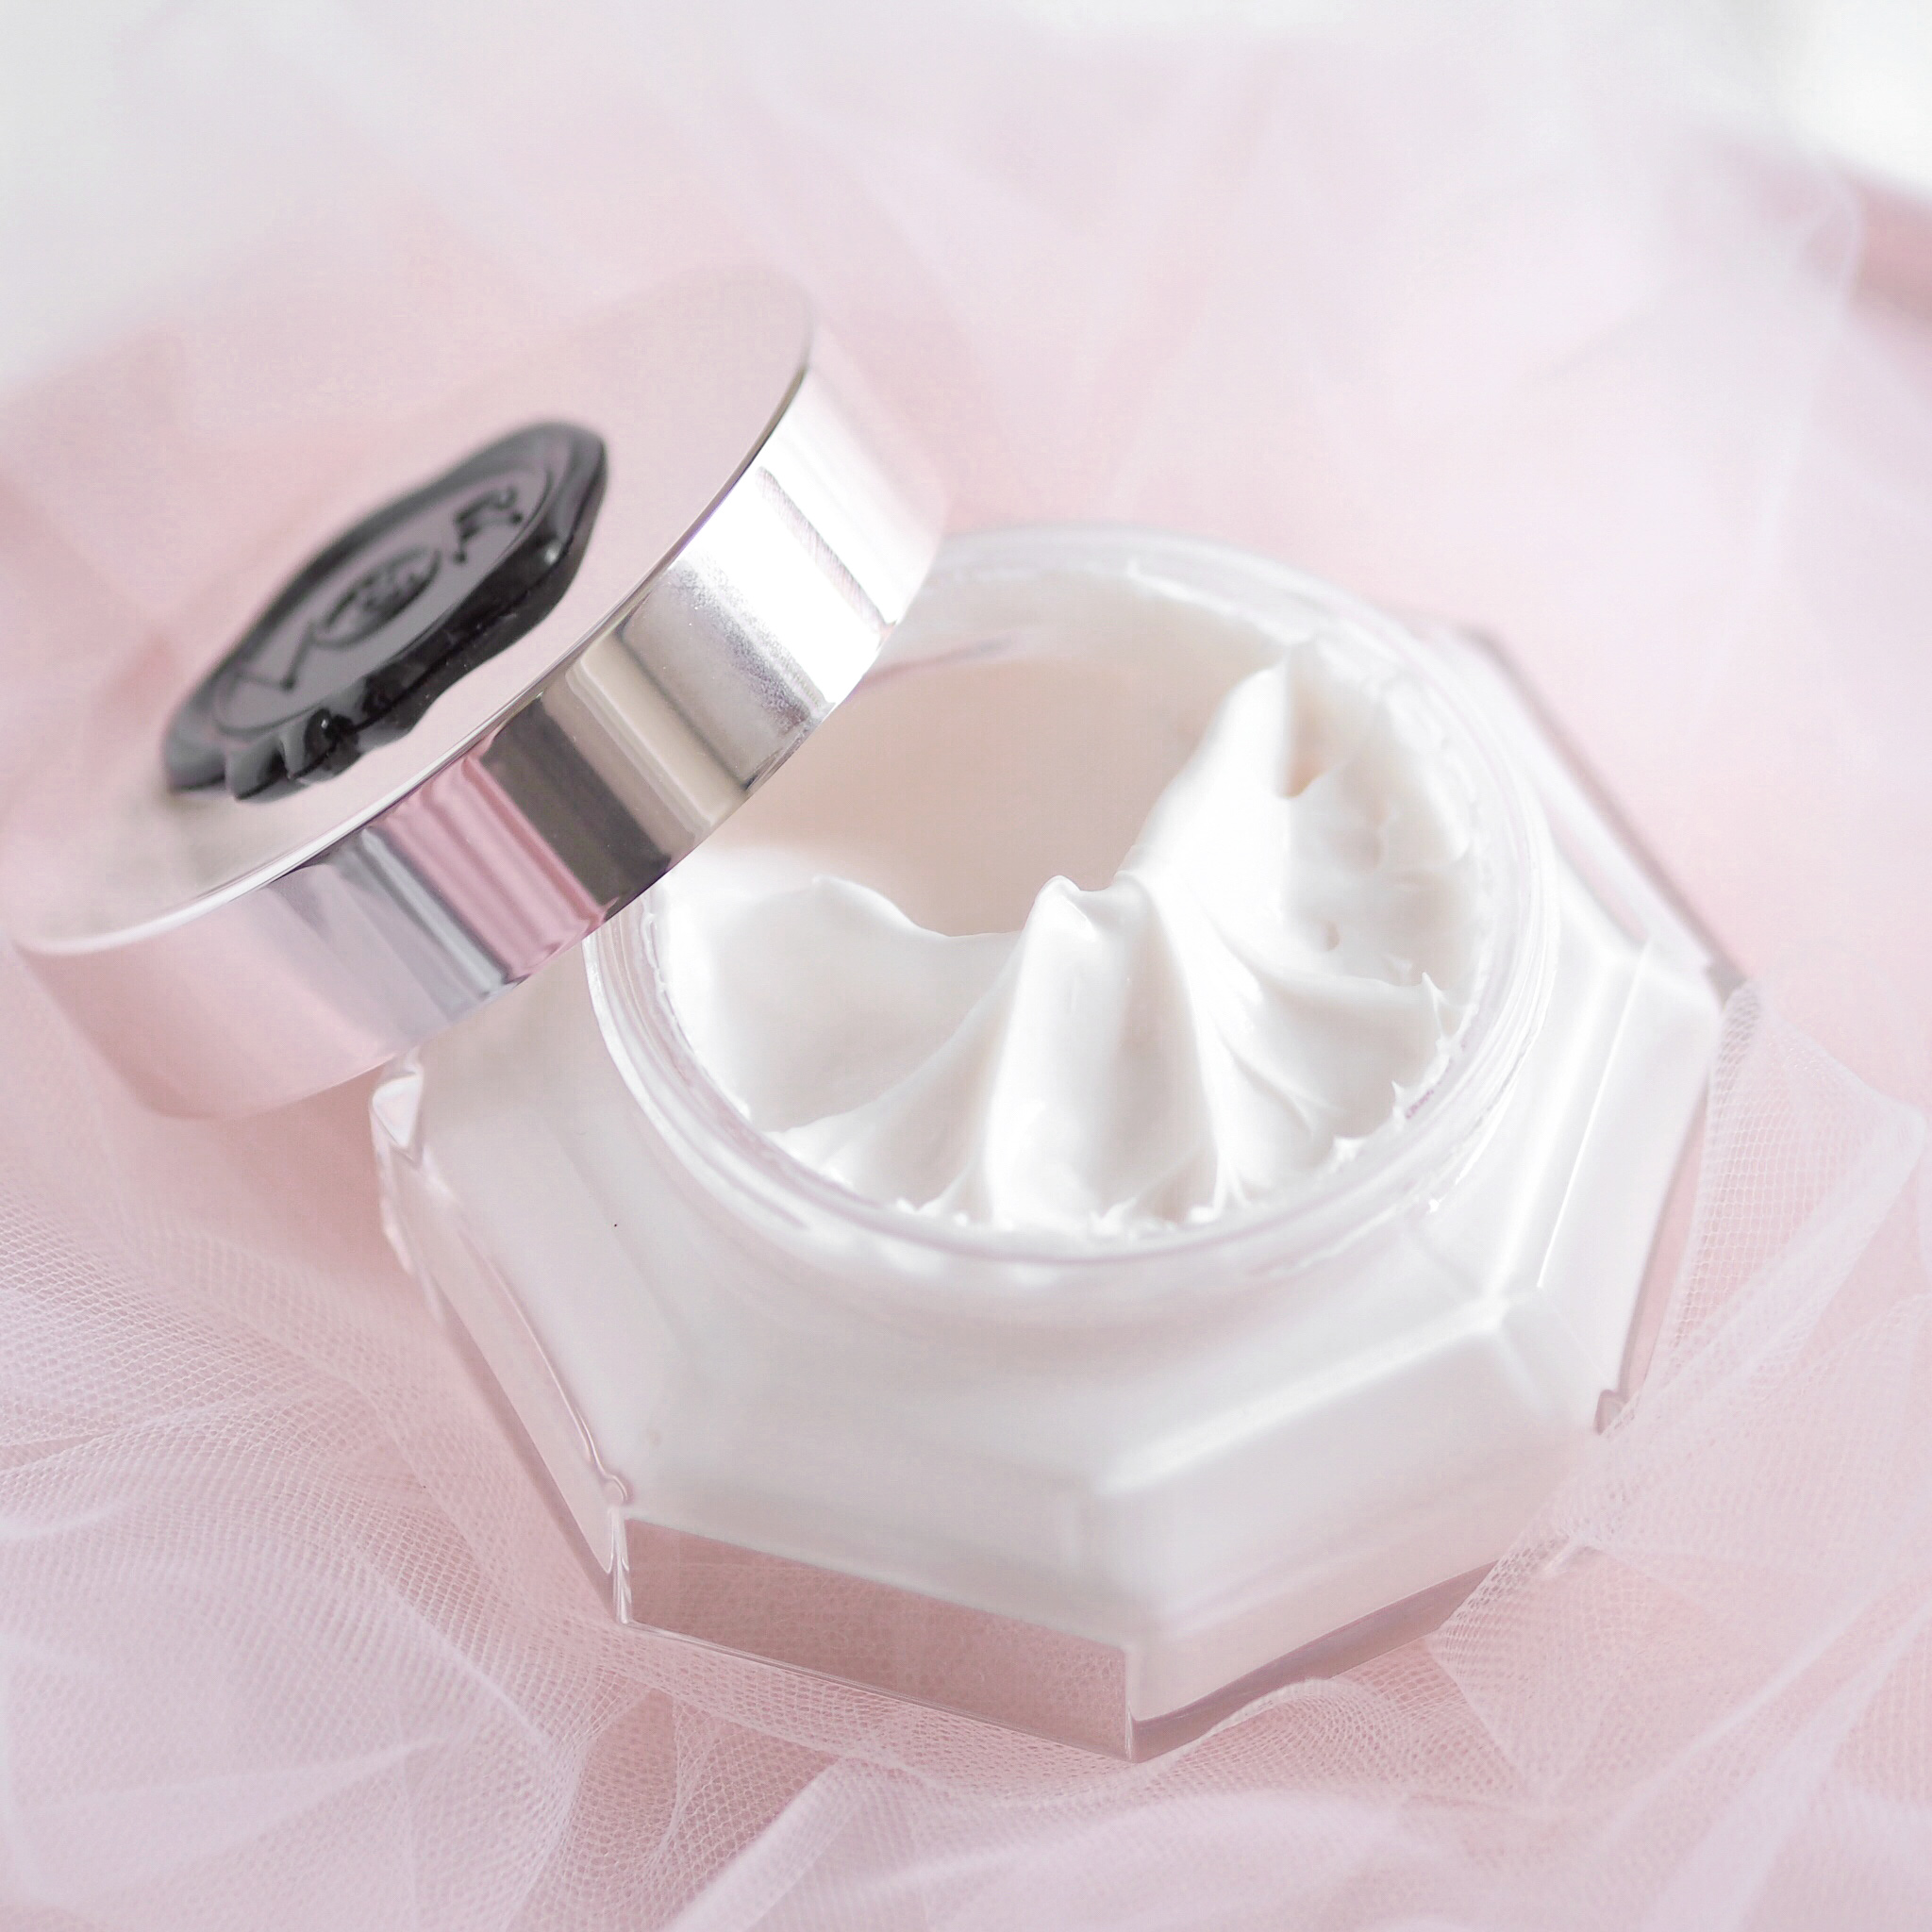 Viktor & Rolf Flowerbomb Body Cream, The Lovely Things I Received For Christmas | Love Catherine